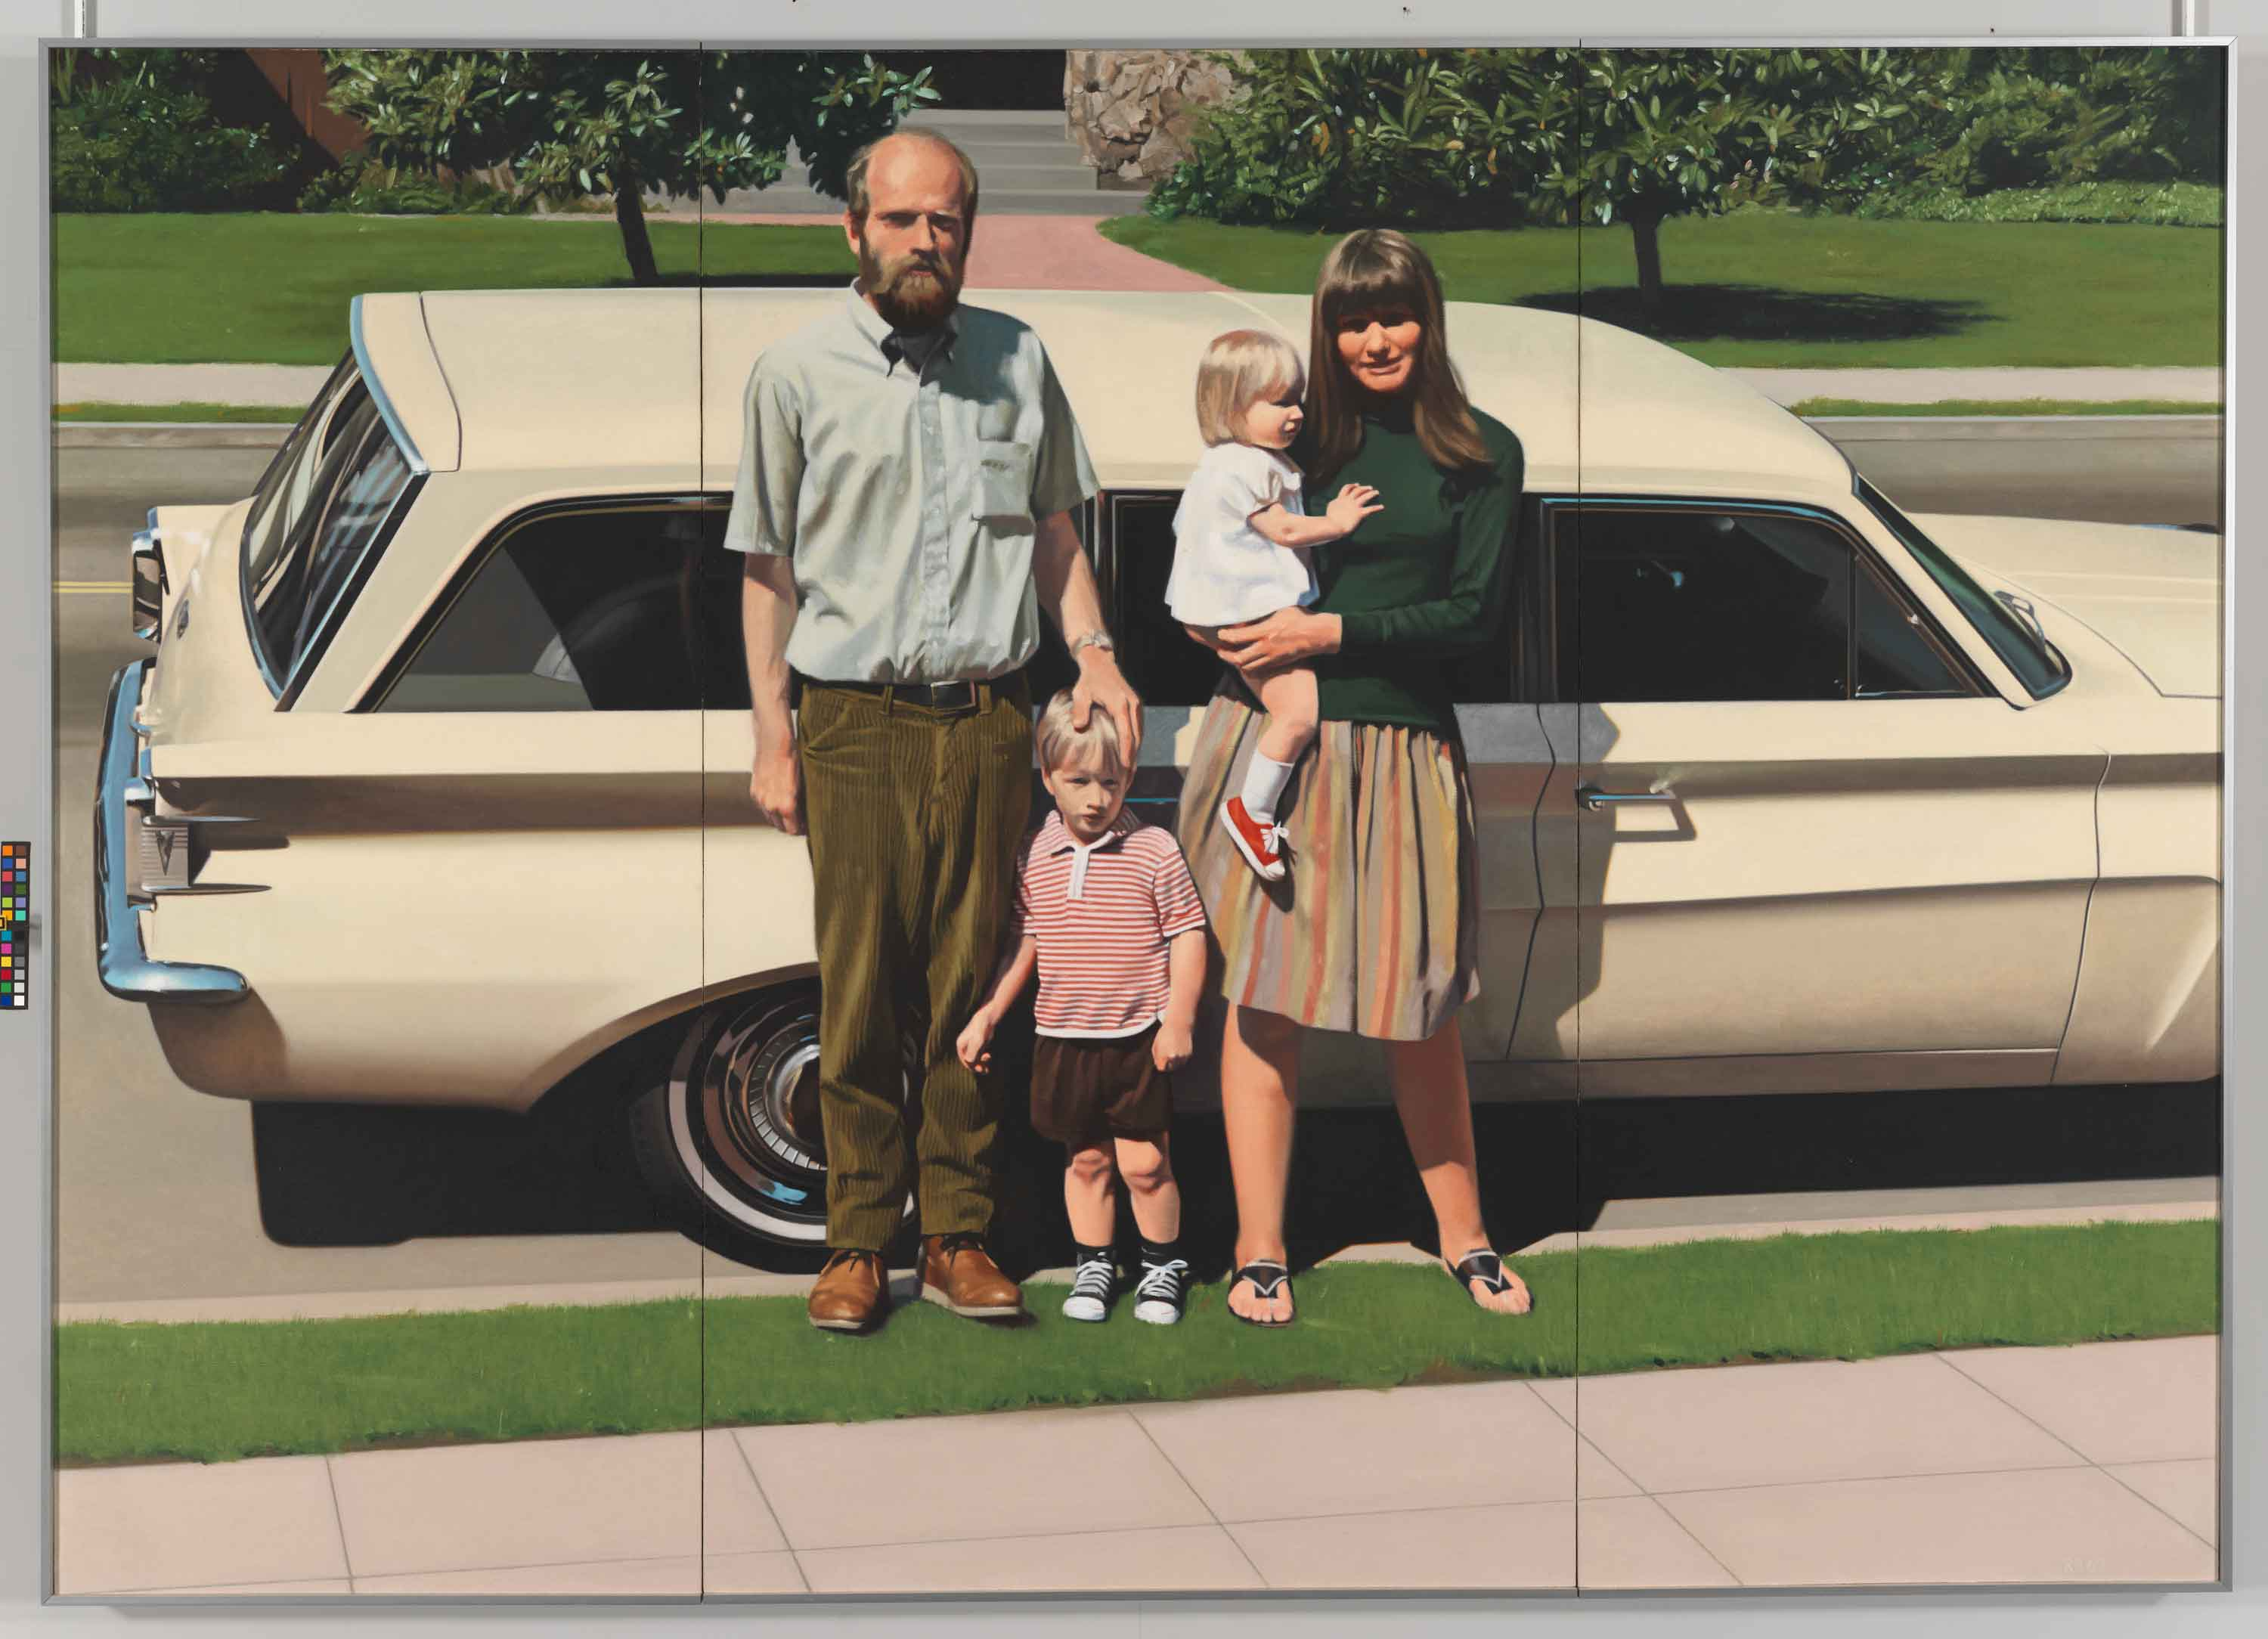 Robert Bechtle (b. 1932).  '61 Pontiac, 19681969.  Oil on canvas, 59 3/4 × 84 1/4in. (151.8 × 214 cm). 	Whitney Museum of American Art, New York; purchase, with funds from the Richard and Dorothy Rodgers     Fund  70.16.  	© Robert Bechtle